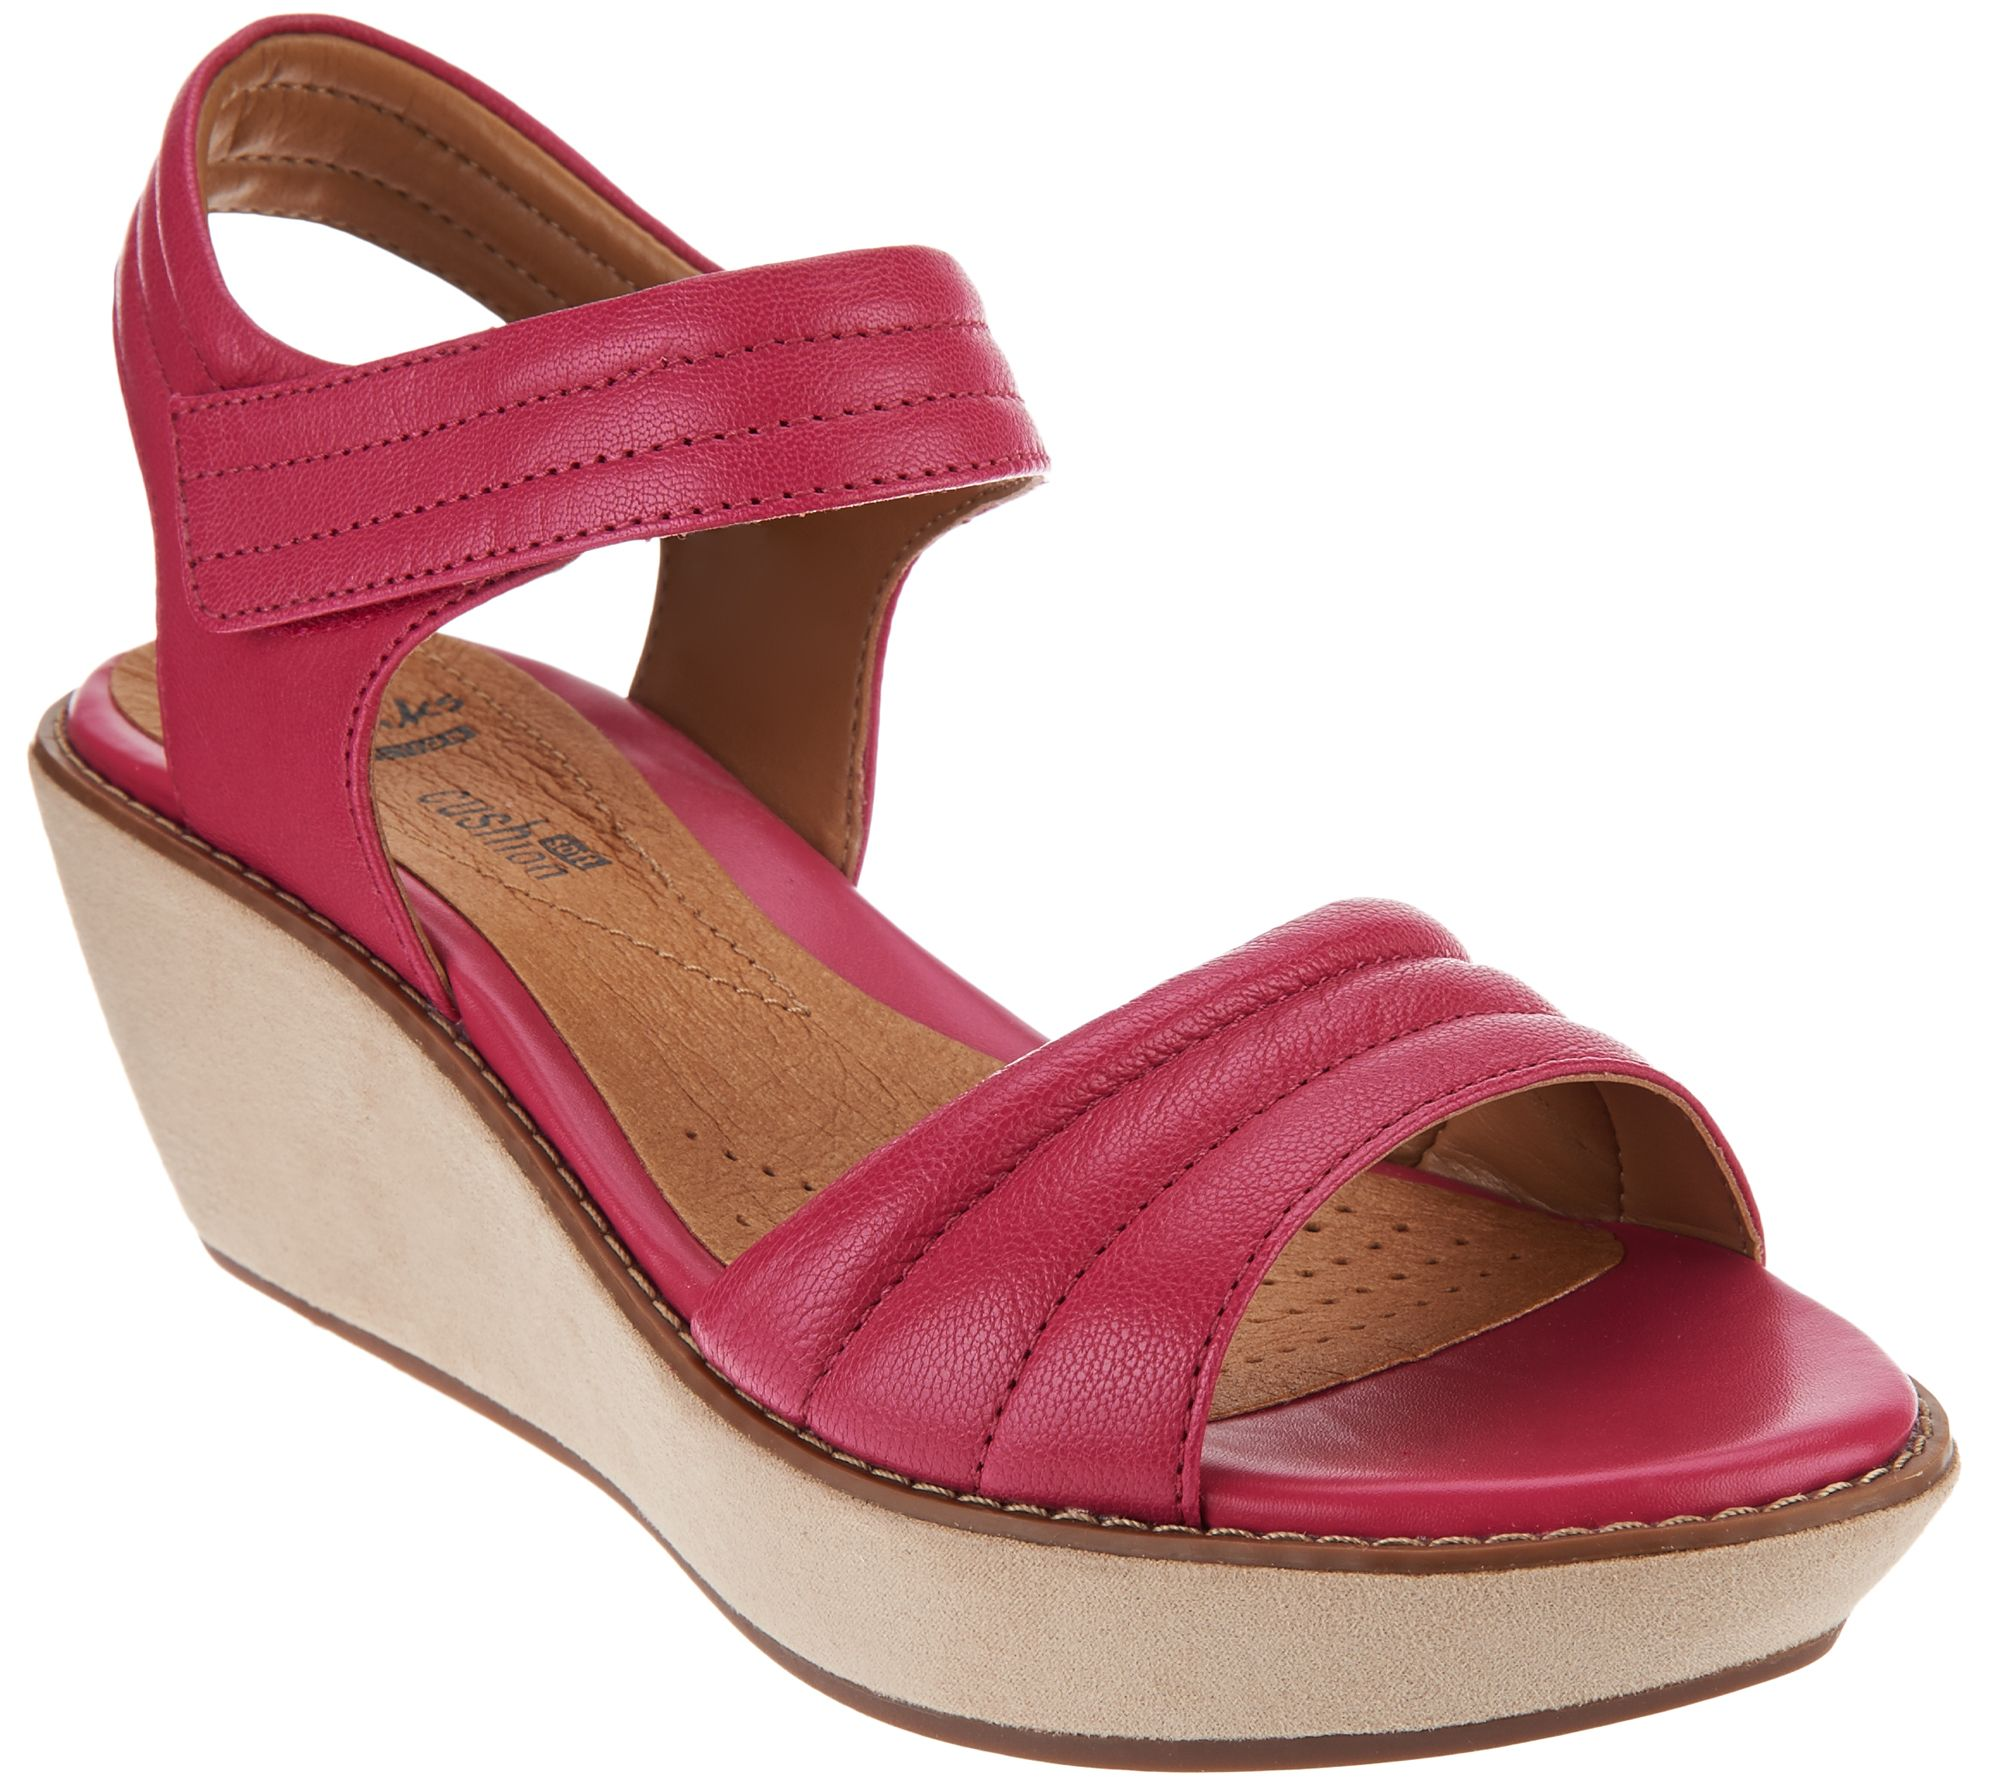 b1f04883d598 Clarks Leather Quilted Strap Wedge Sandals - Hazelle Alba - Page 1 — QVC.com